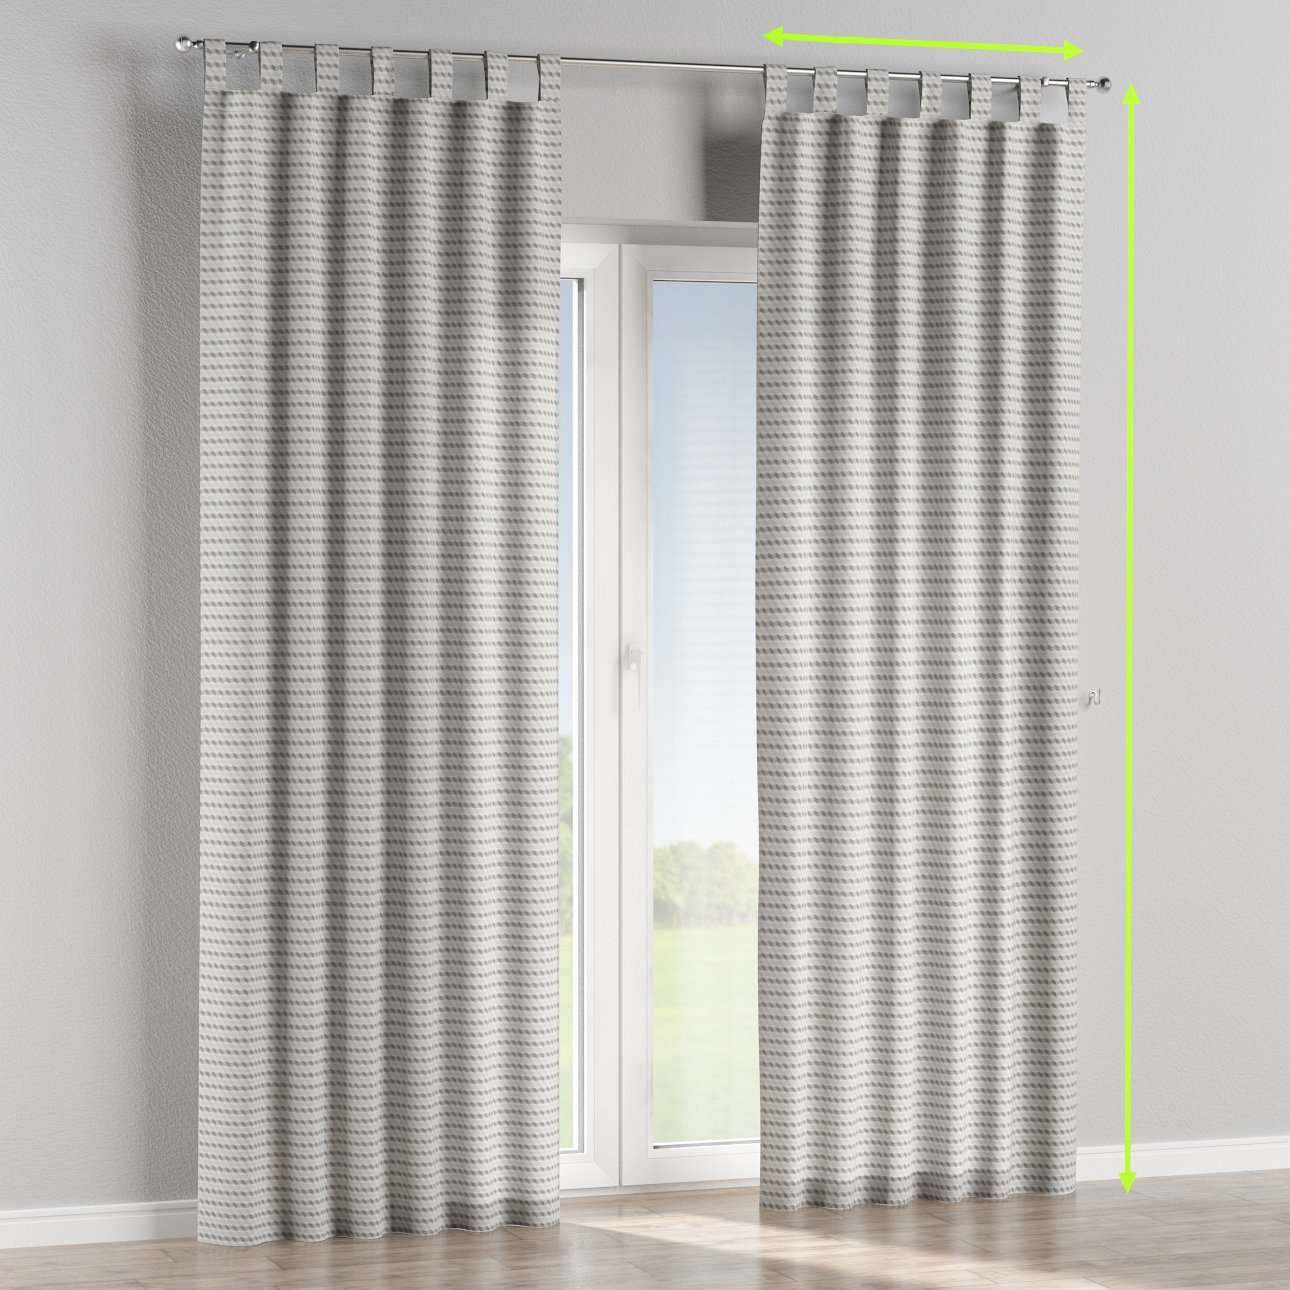 Tab top curtains in collection Rustica, fabric: 140-33